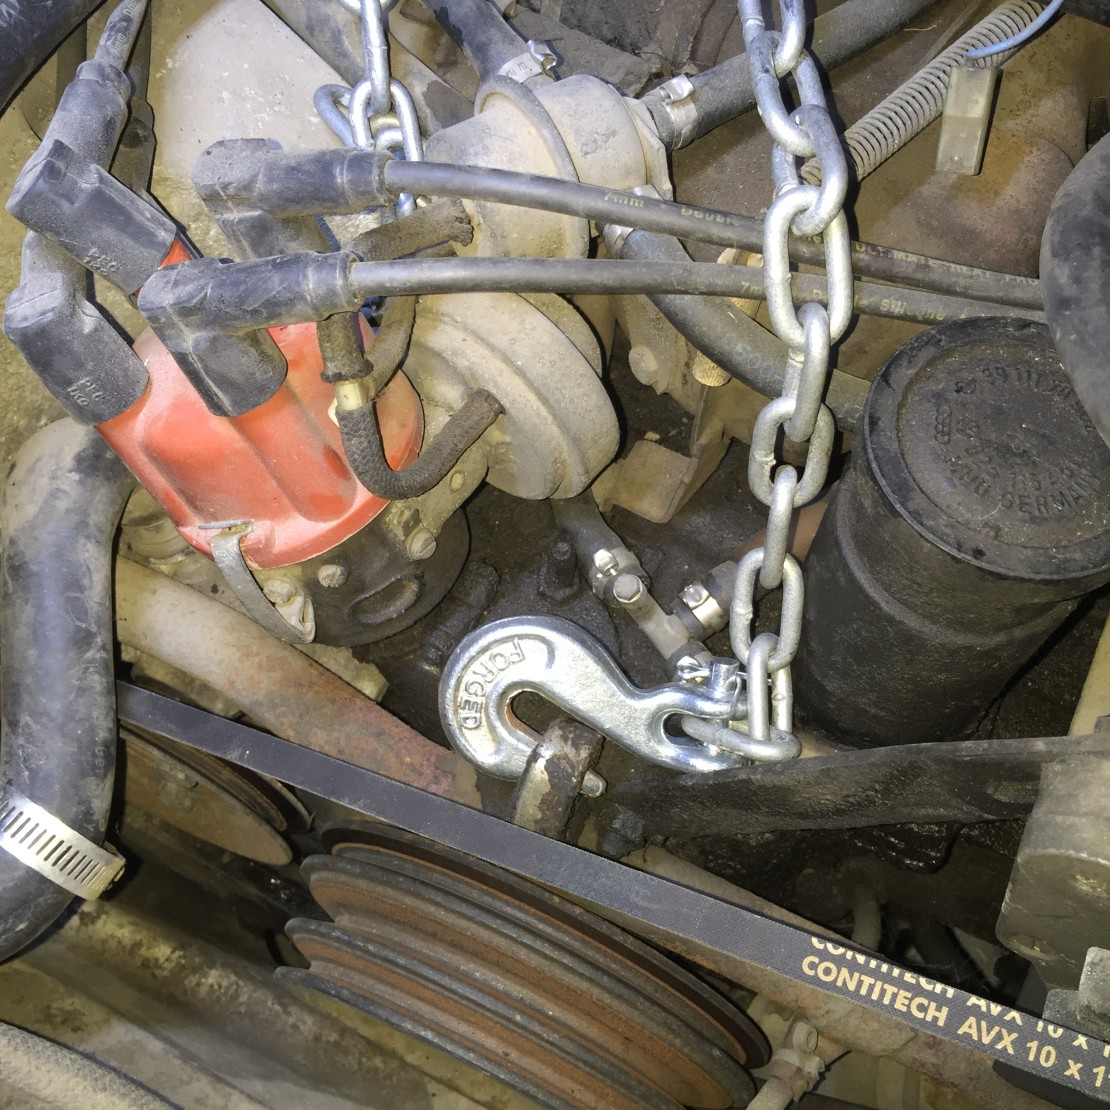 wbx-and-transaxle-removal-14.jpg